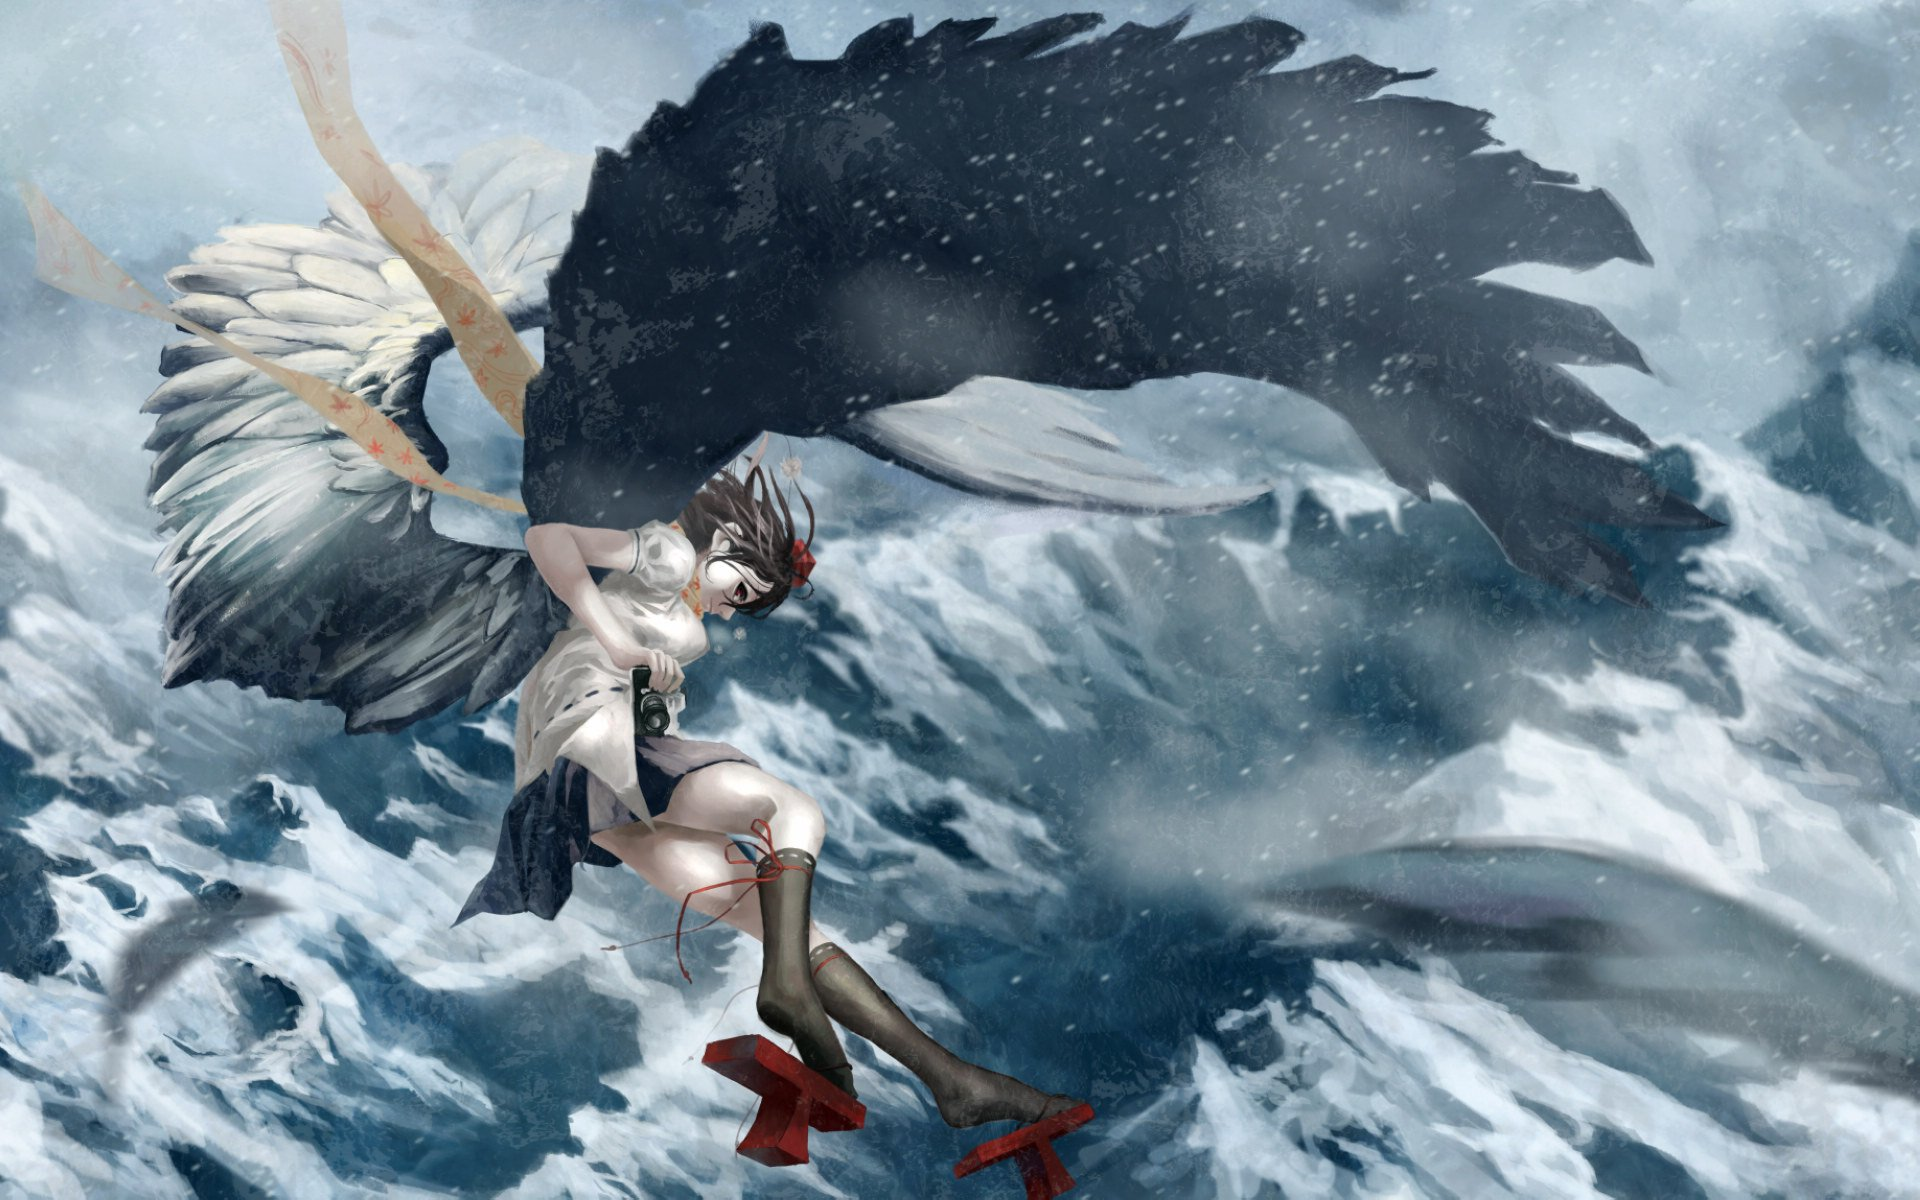 Snow Falling Wallpapers Free Download Anime Girl Fly Cloud Sky Wing Mountain Snow Wallpaper